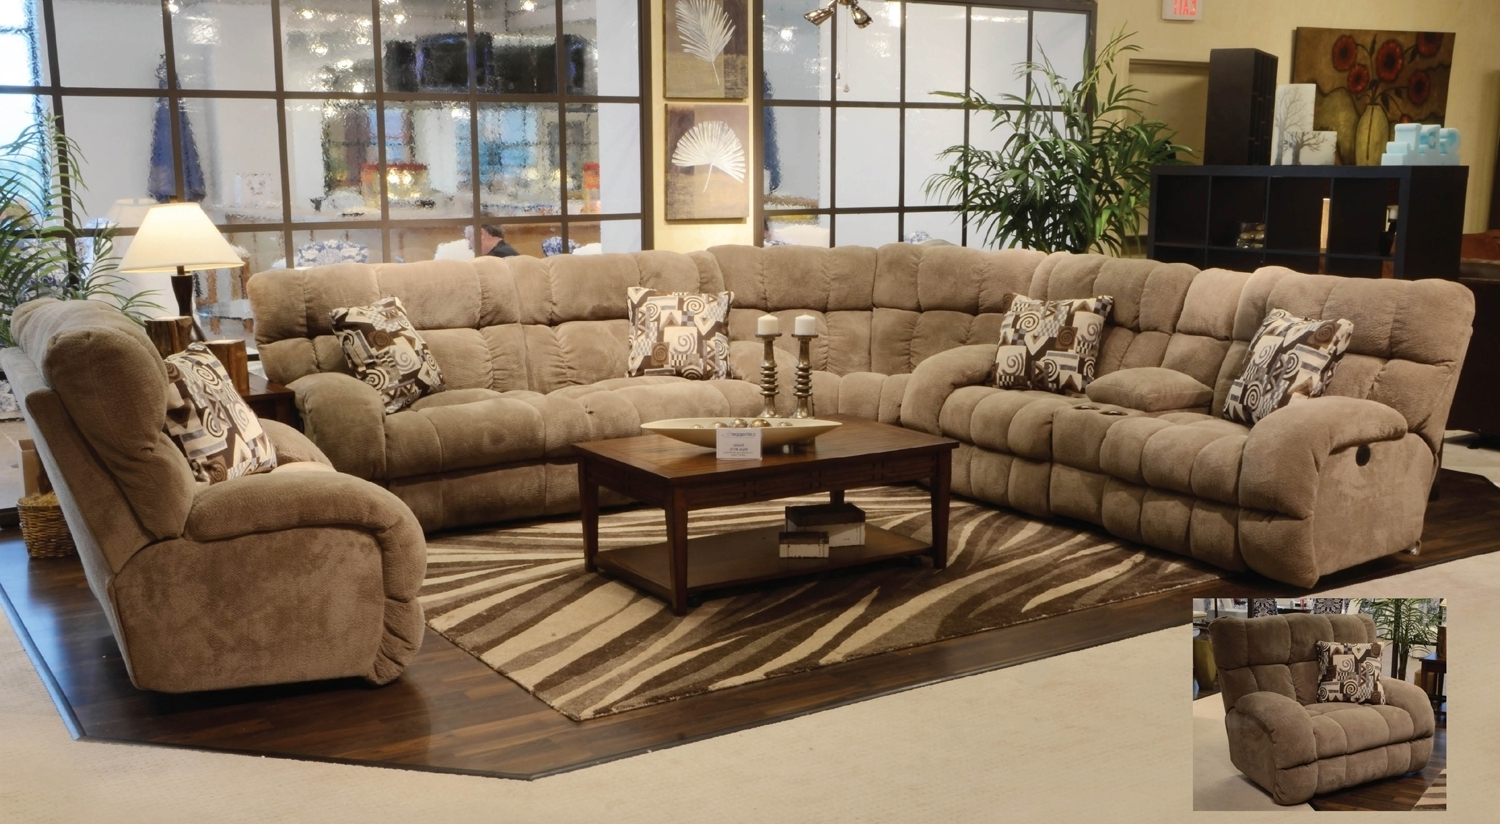 Large Sectional Sofa Home — Capricornradio Homescapricornradio Homes In 2017 Extra Large Sectional Sofas (View 5 of 15)